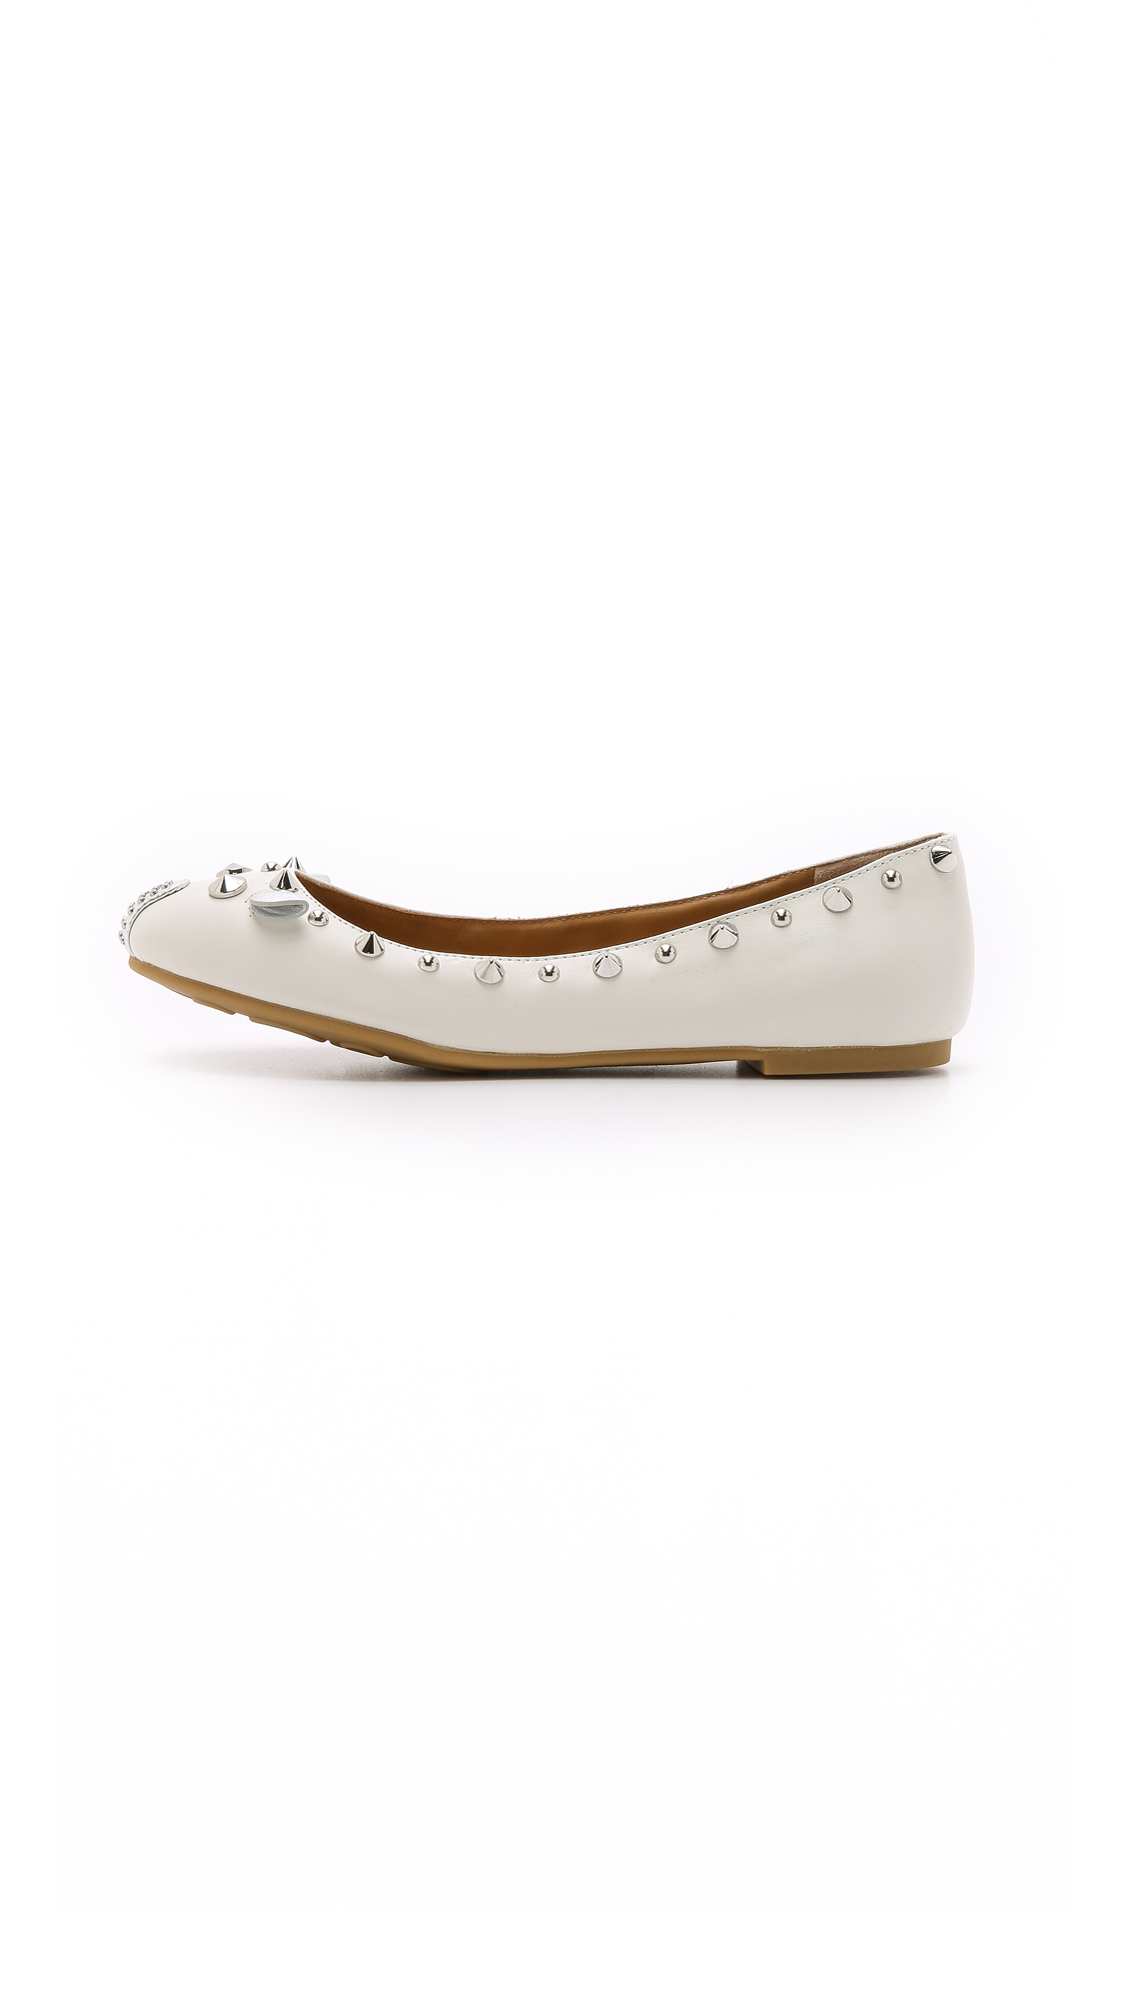 5f89acc7c18c8 Lyst - Marc By Marc Jacobs Punk Mouse Ballerina Flats - Talc in White